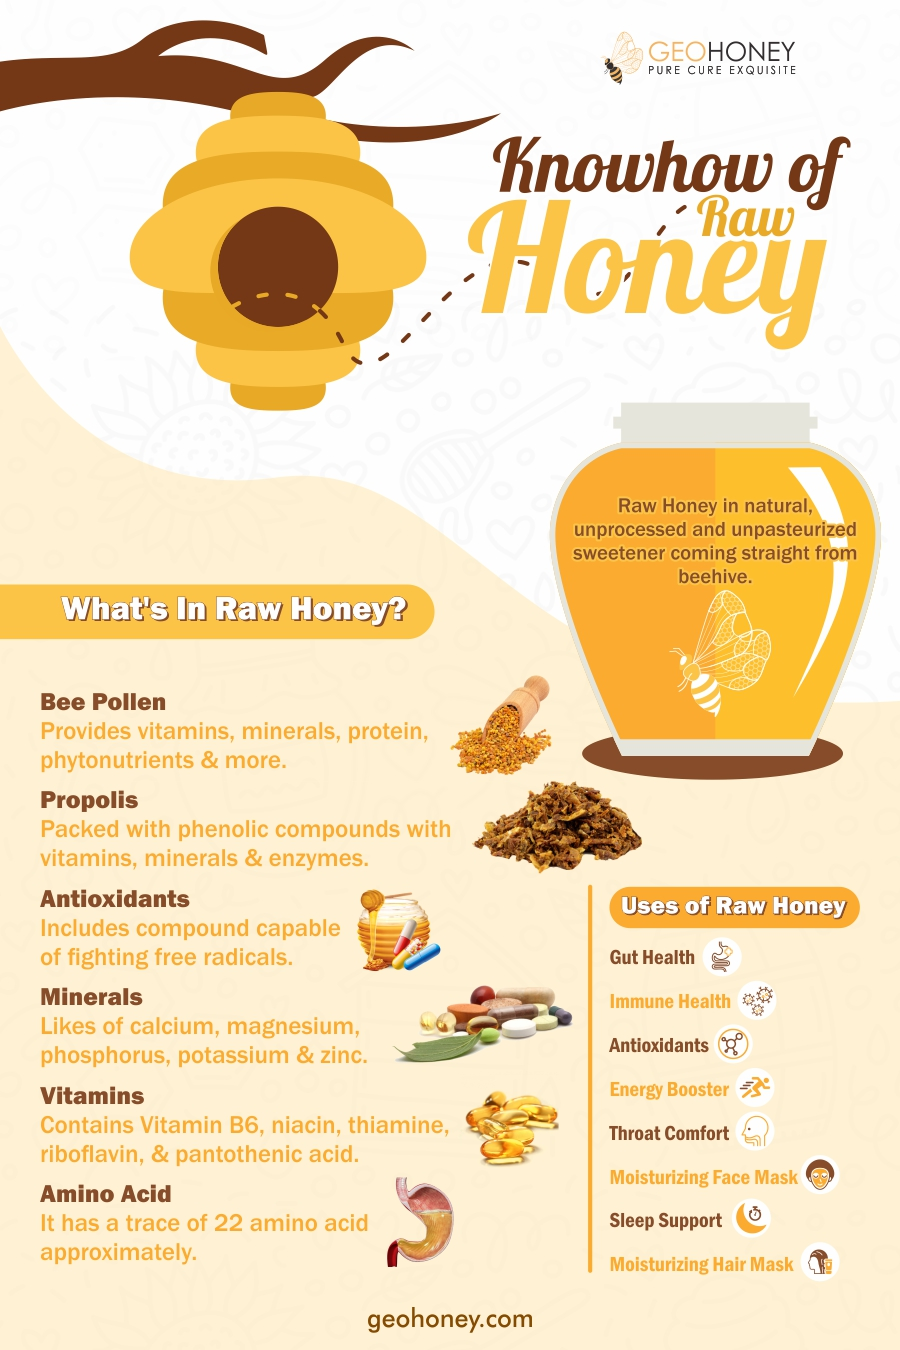 Raw honey - Goehoney